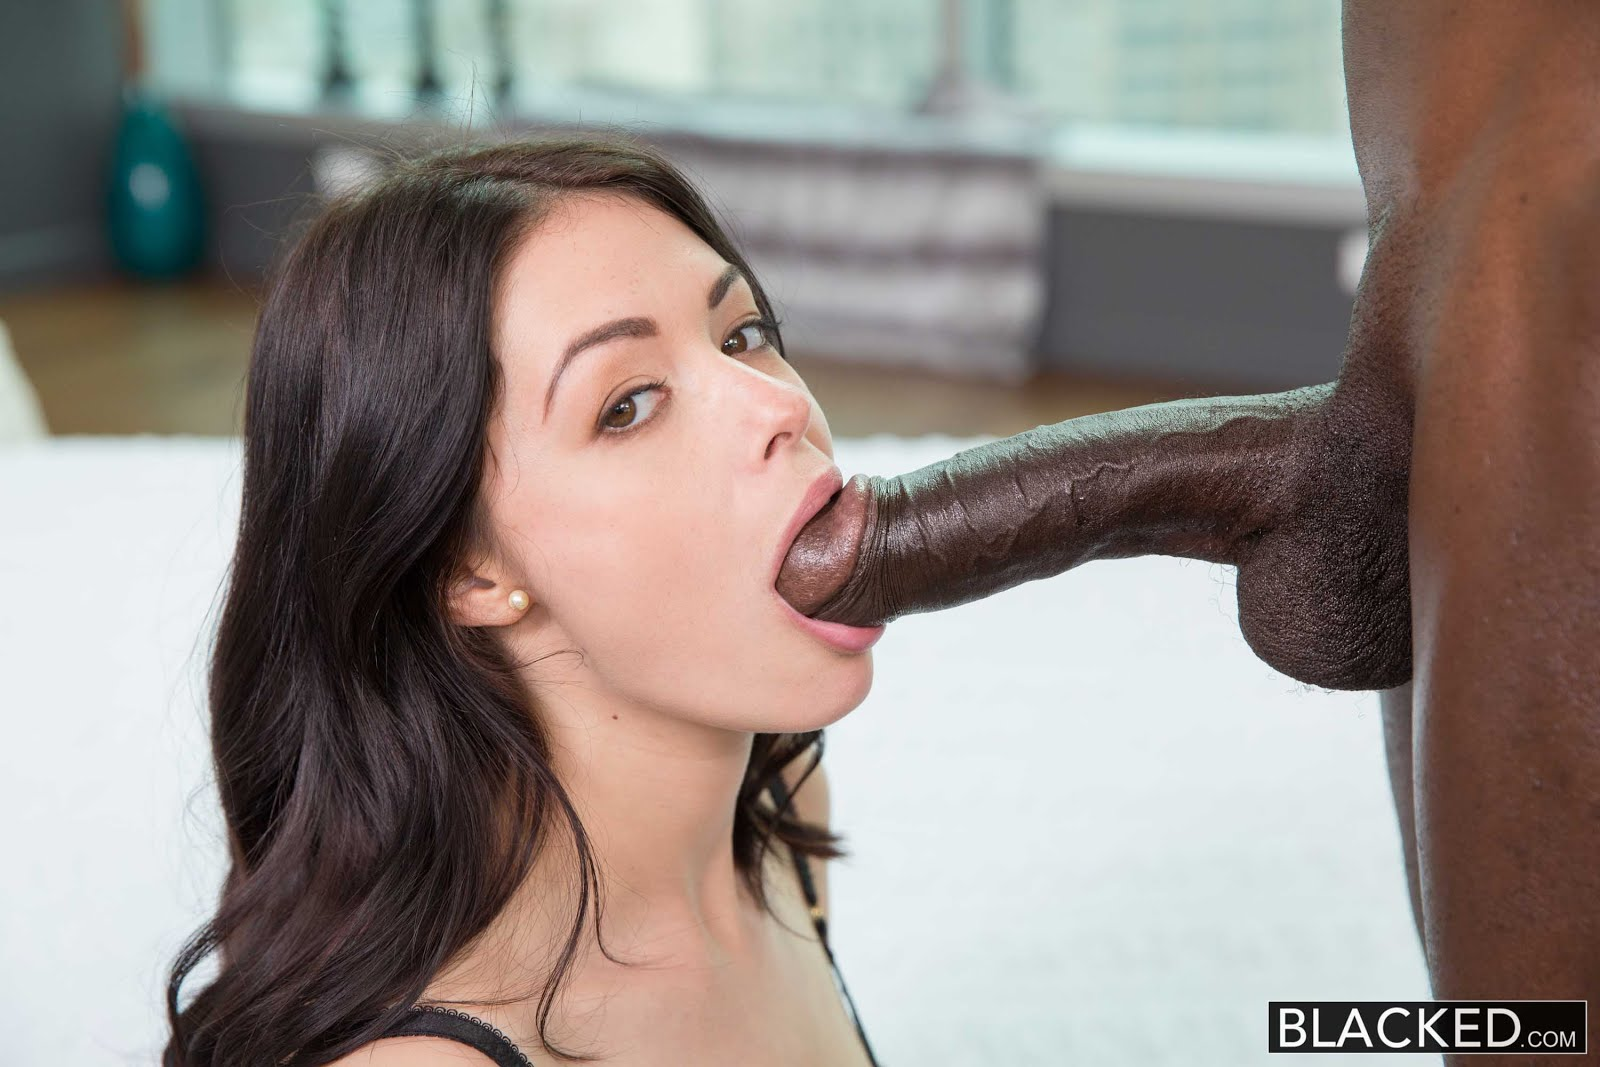 Like that huge black cock pictures New favorite! She